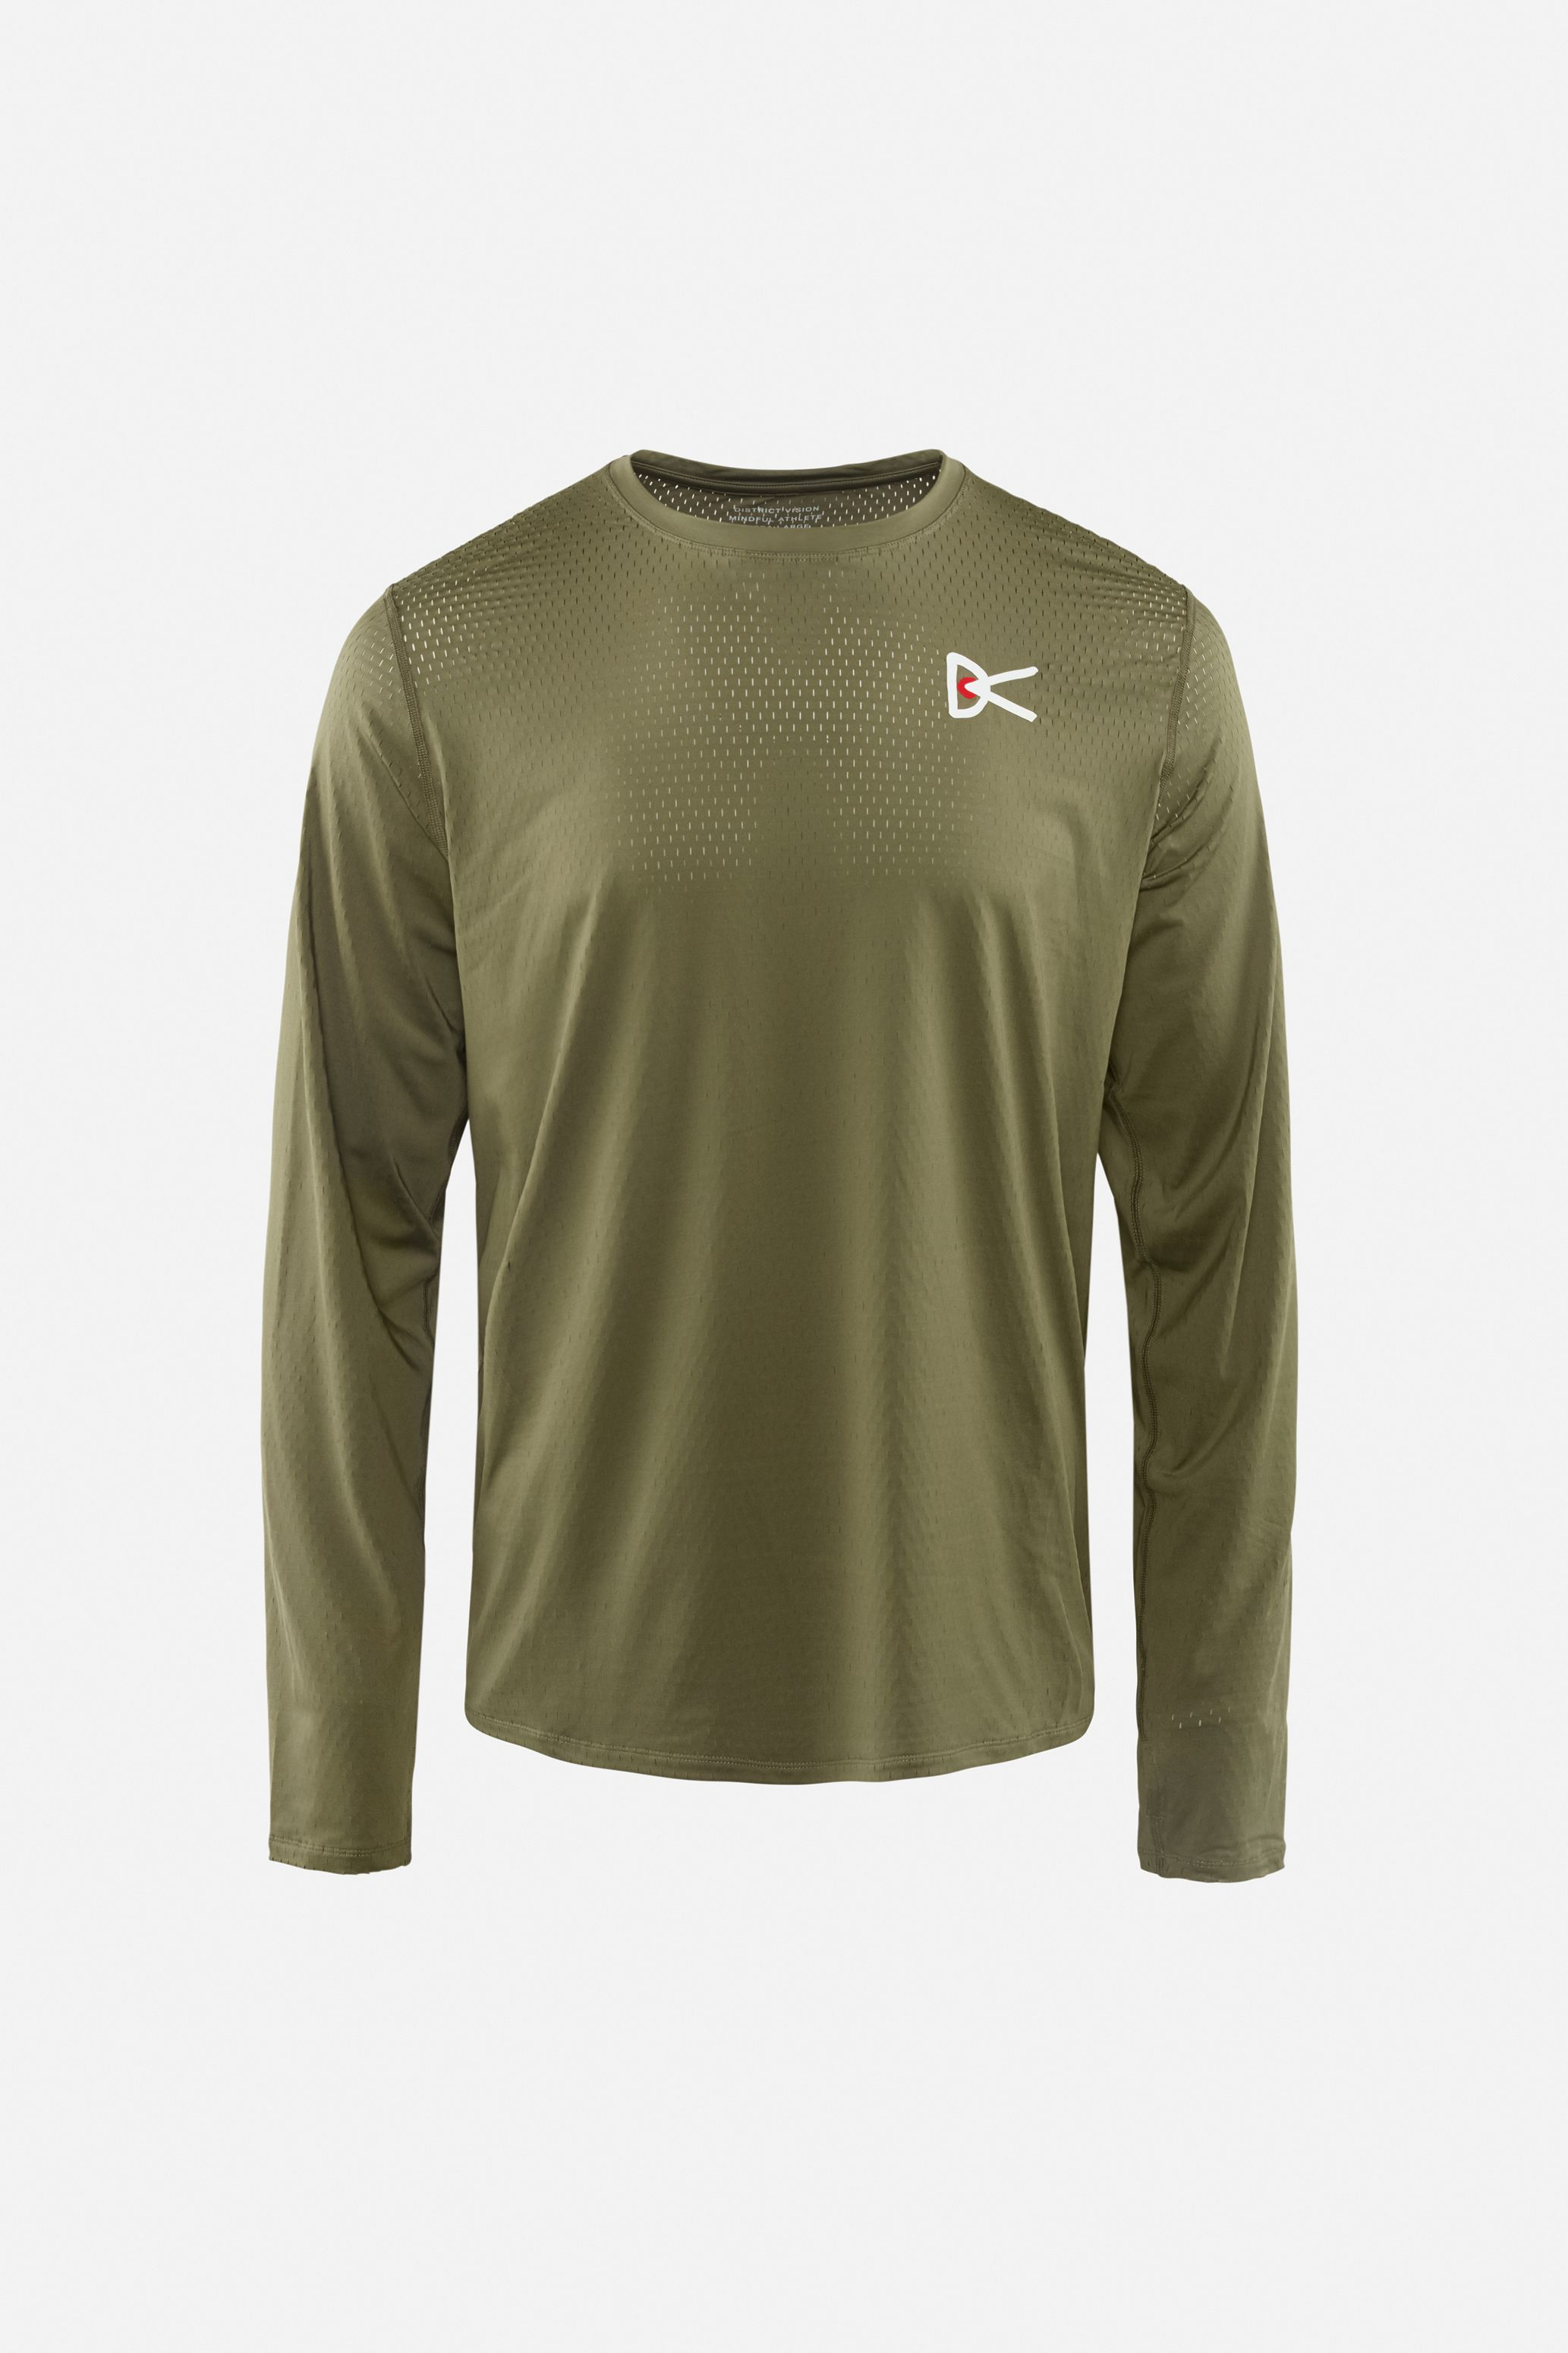 Air––Wear Long Sleeve T-Shirt, Khaki